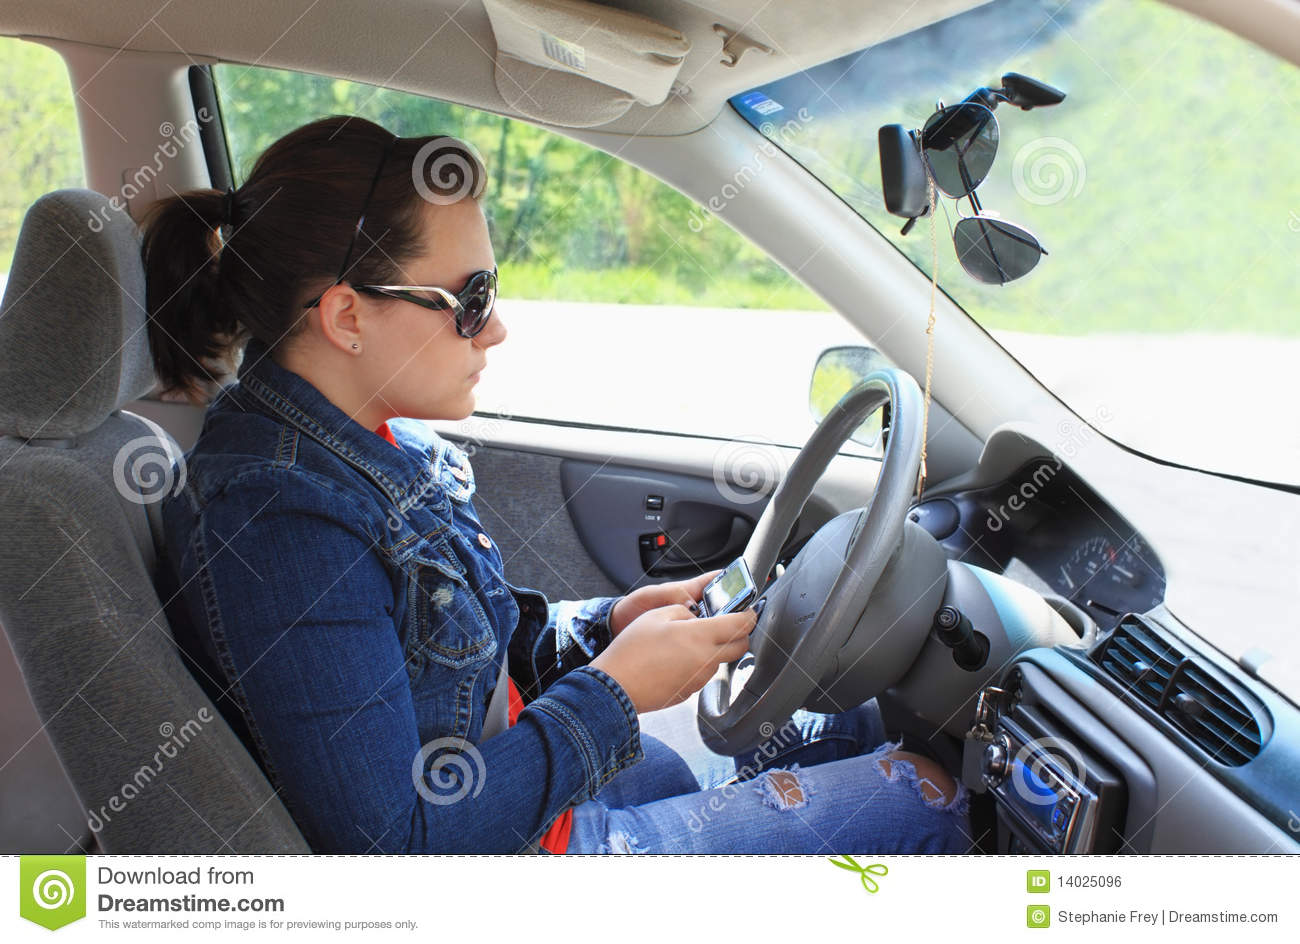 Driver Cellphone and Texting Bans in the United States: Evidence of Effectiveness